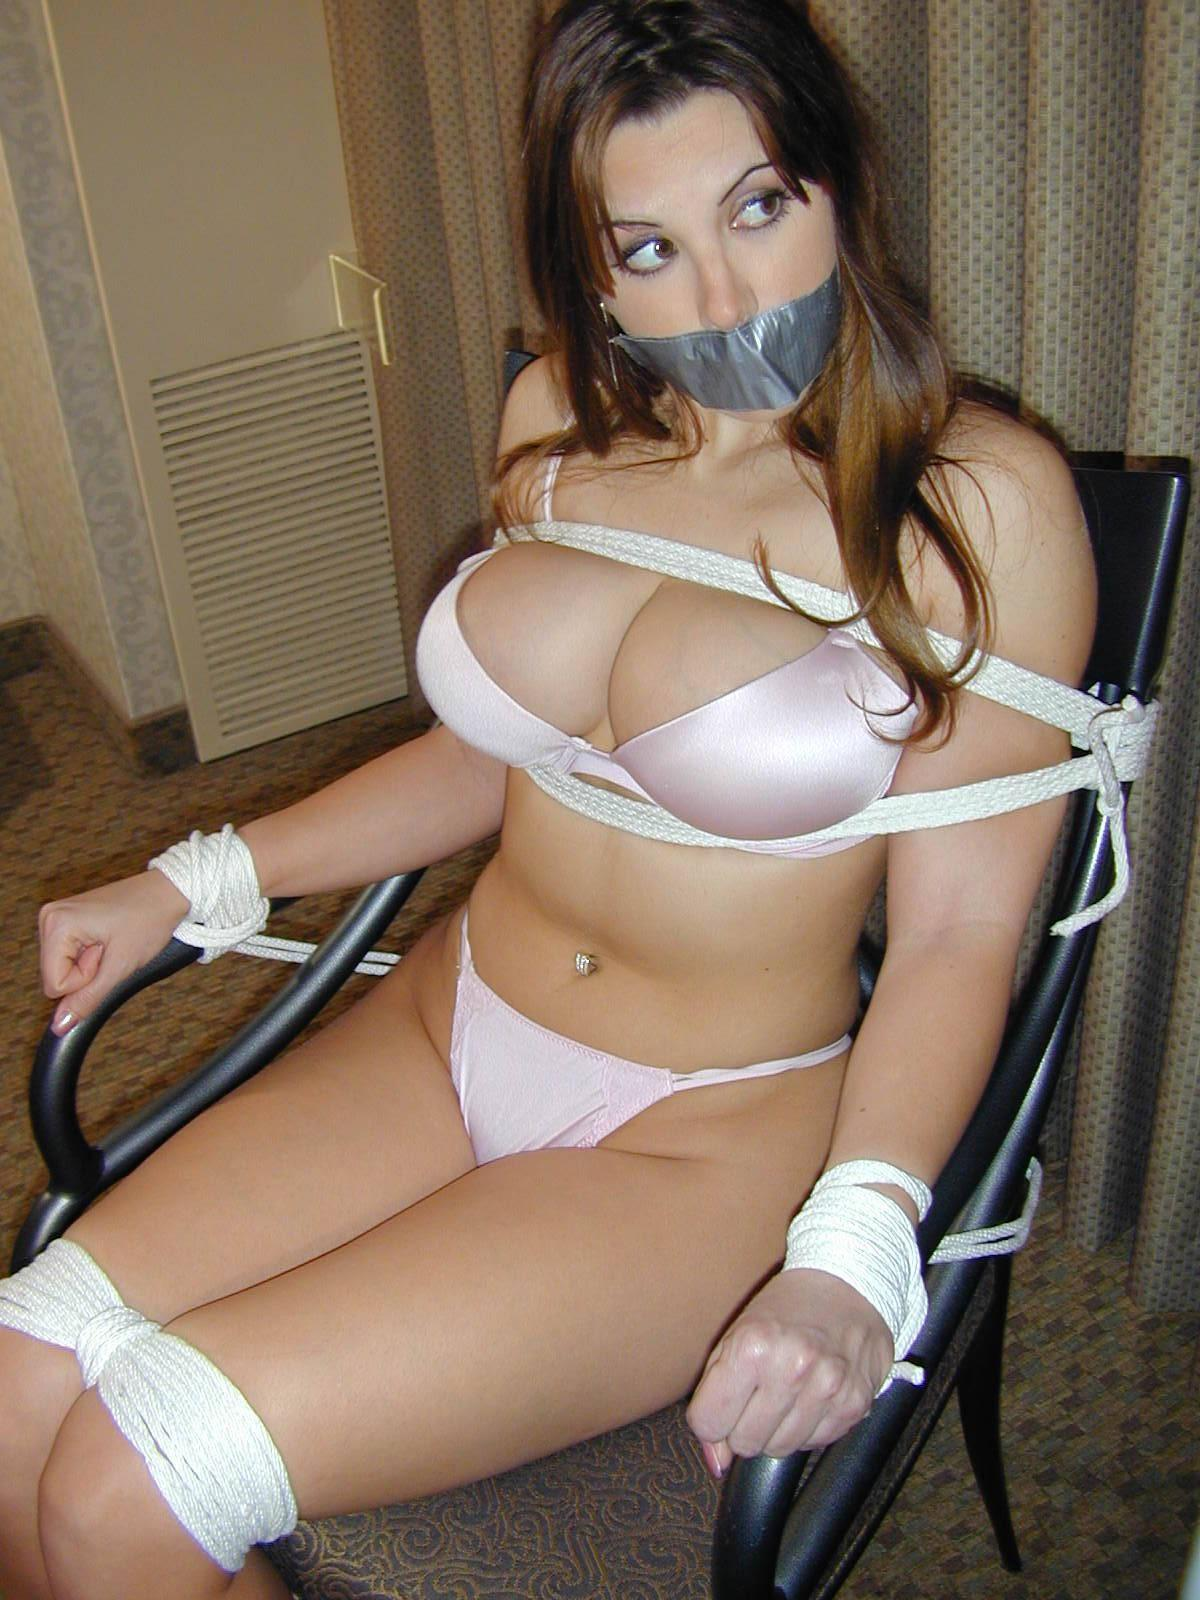 Hot sexy babes in BDSM